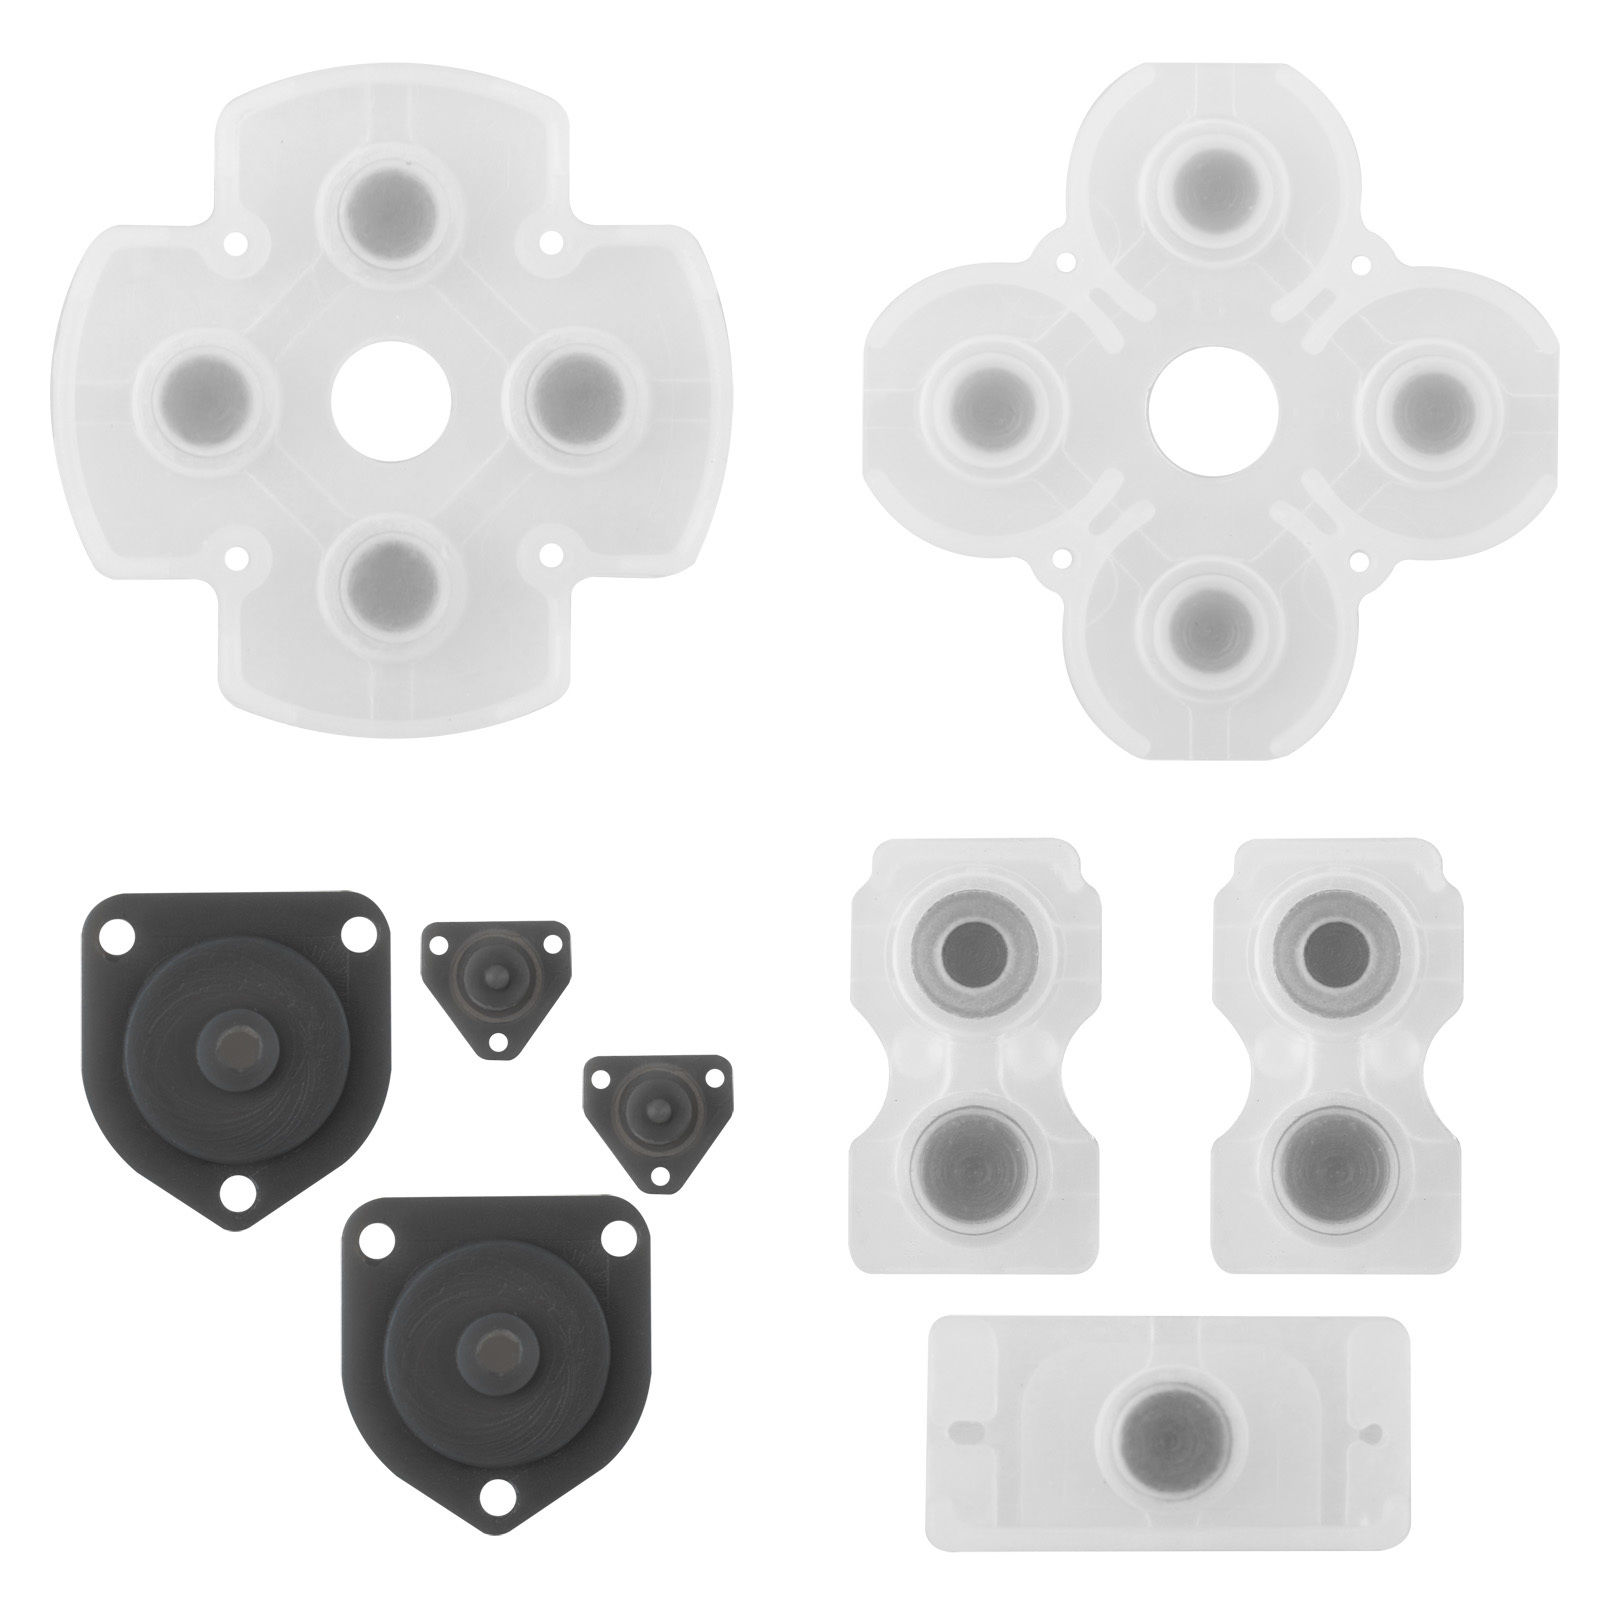 Controller Rubber Conductive Pad Silicon Buttons For Sony PS4 Repair Replacement